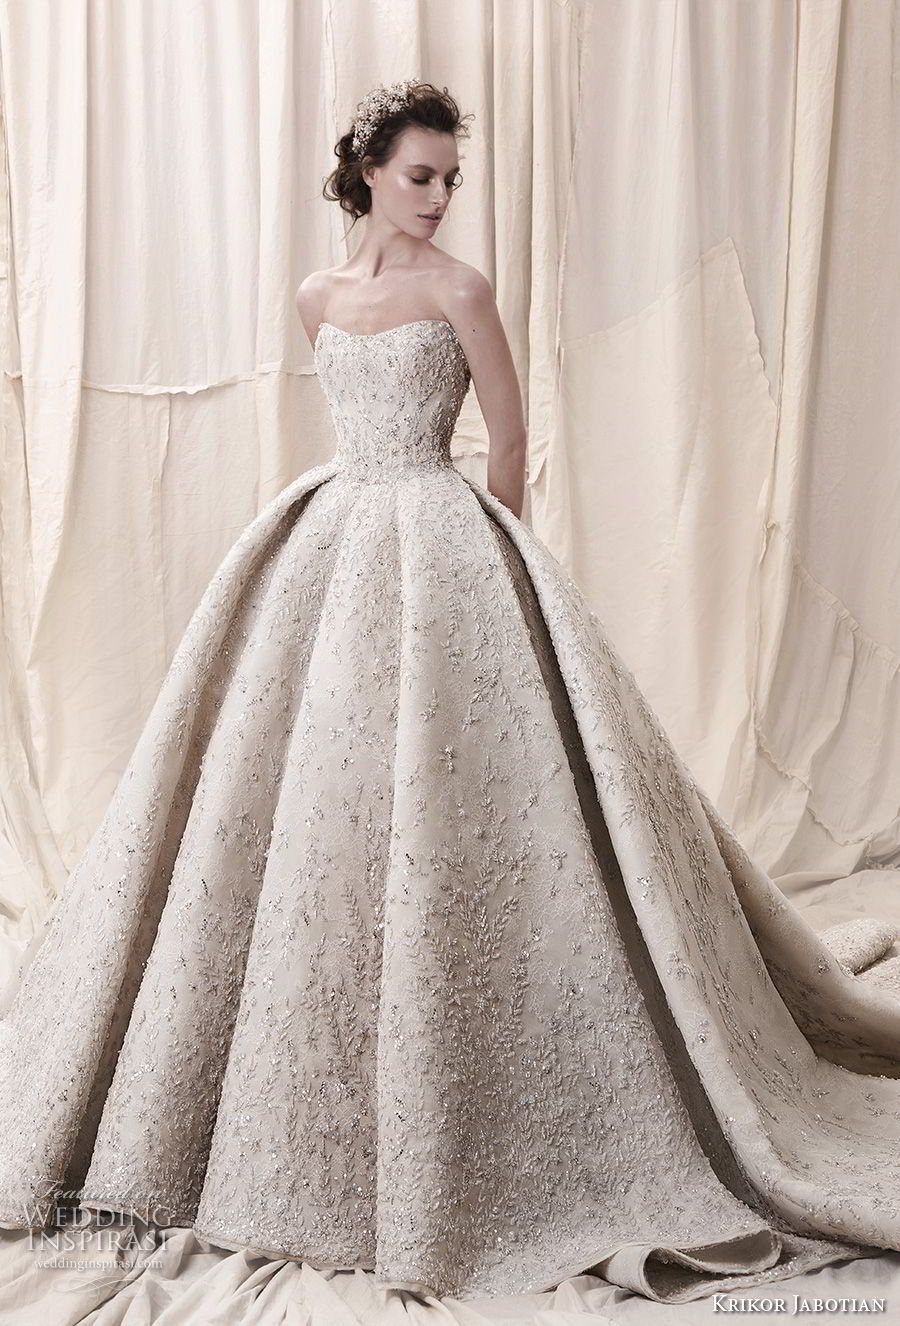 krikor jabotian spring 2018 bridal straplss semi sweetheart neckline full embellishment glamorous princess ball gown a  line wedding dress open back royal train (05) mv